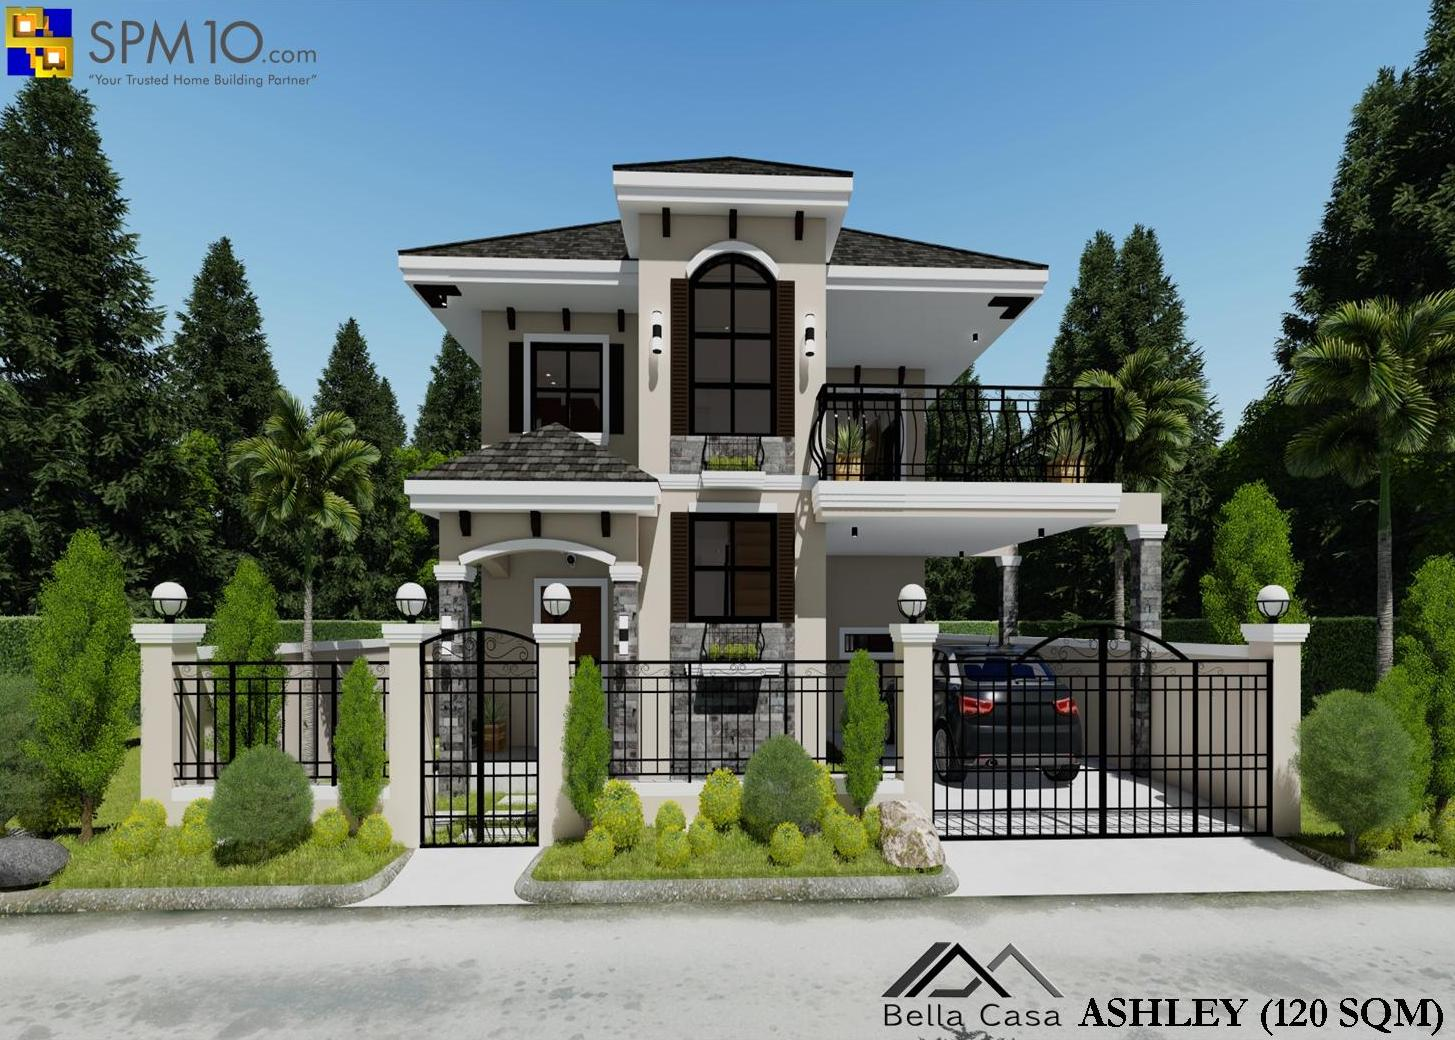 Cagayan de Oro Buidler/SPM10 : Bella Casa - Ashley